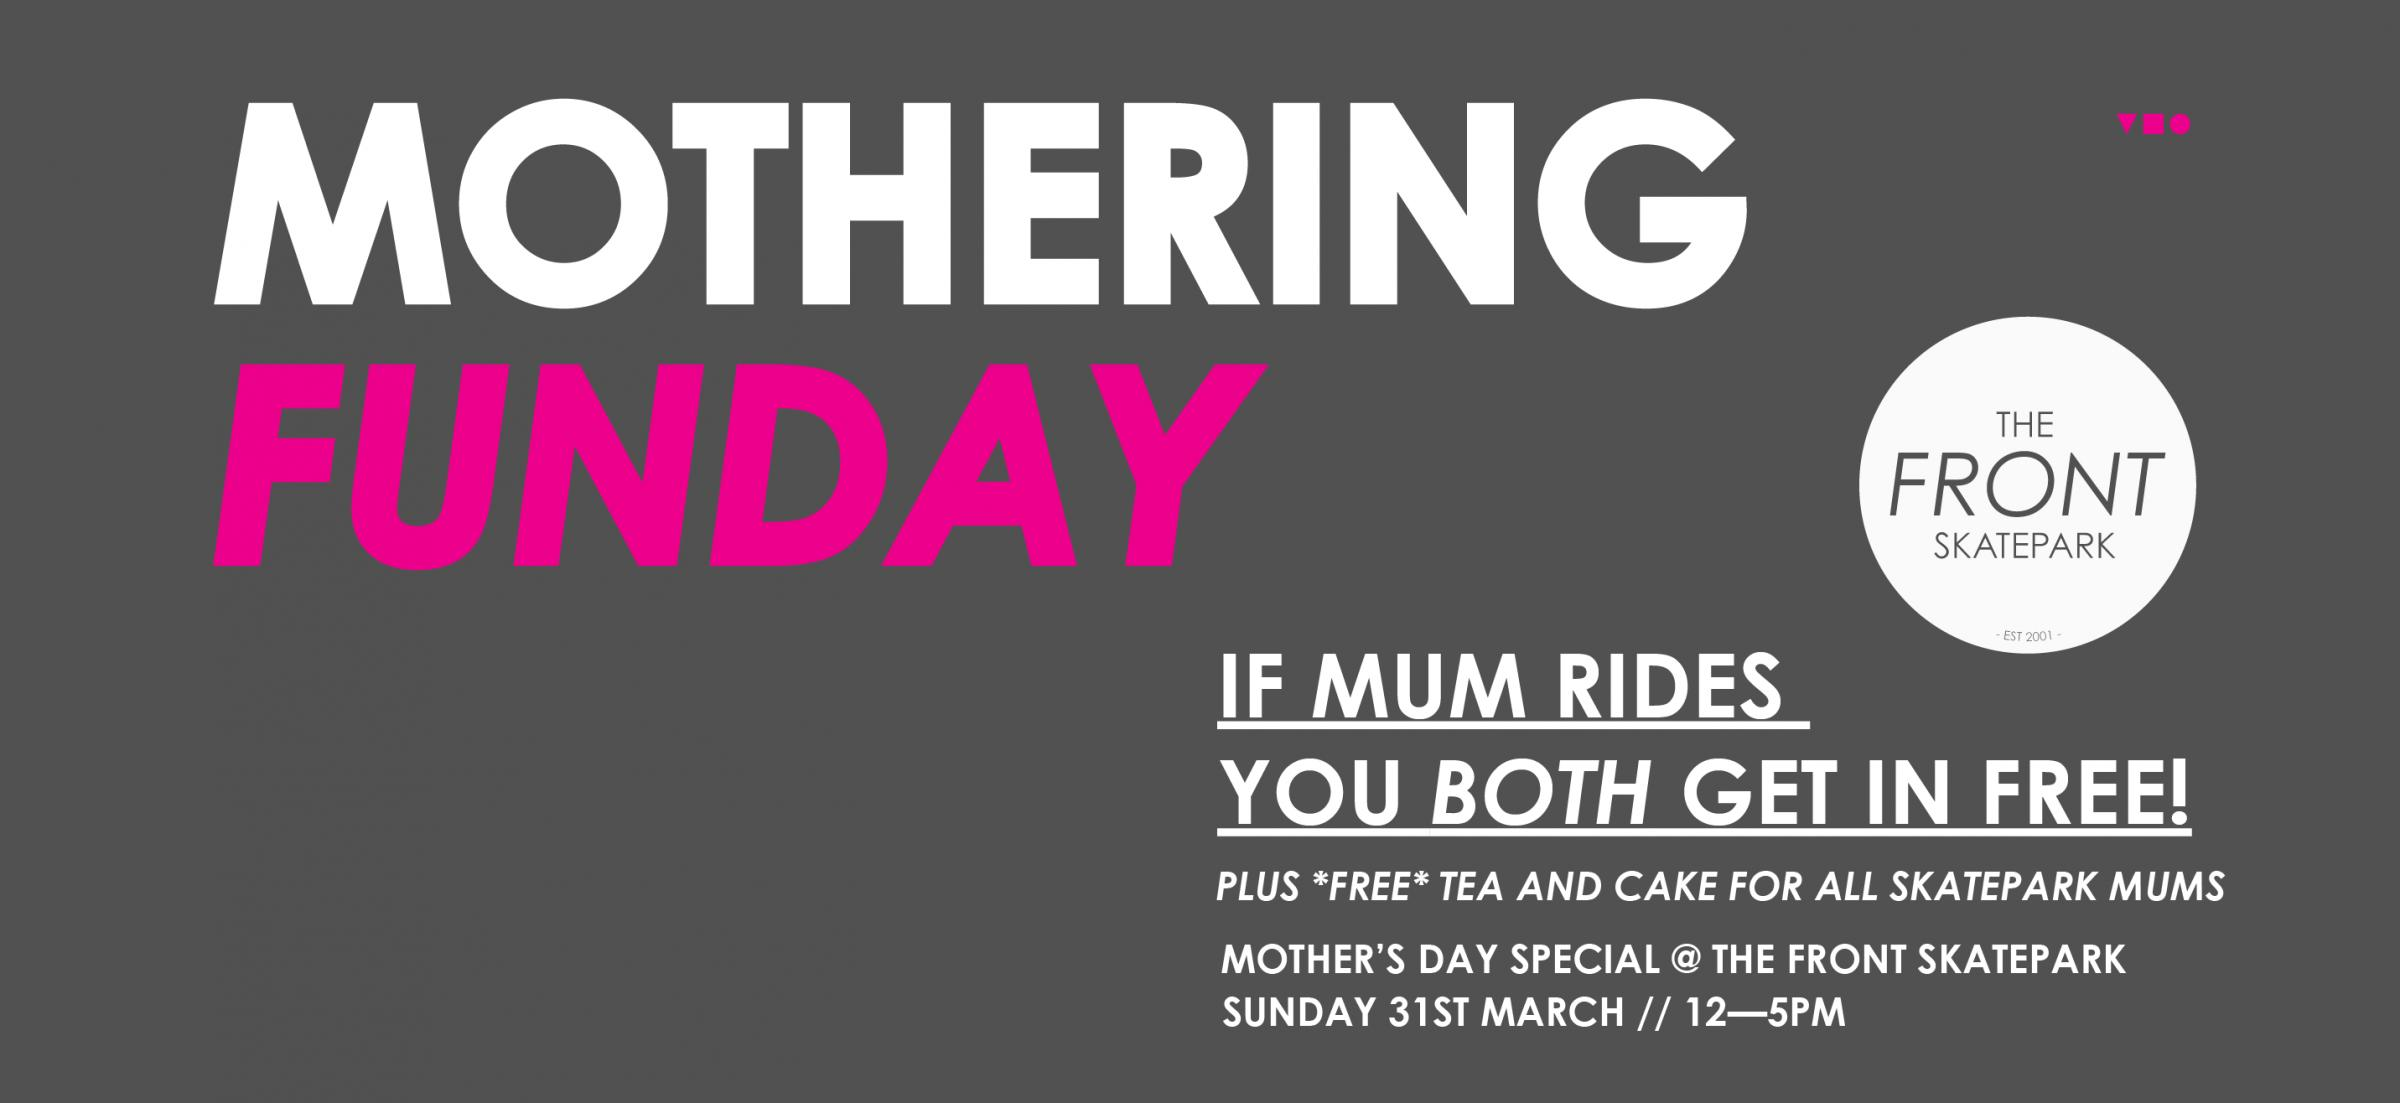 Mothering Funday @ The Front Skatepark